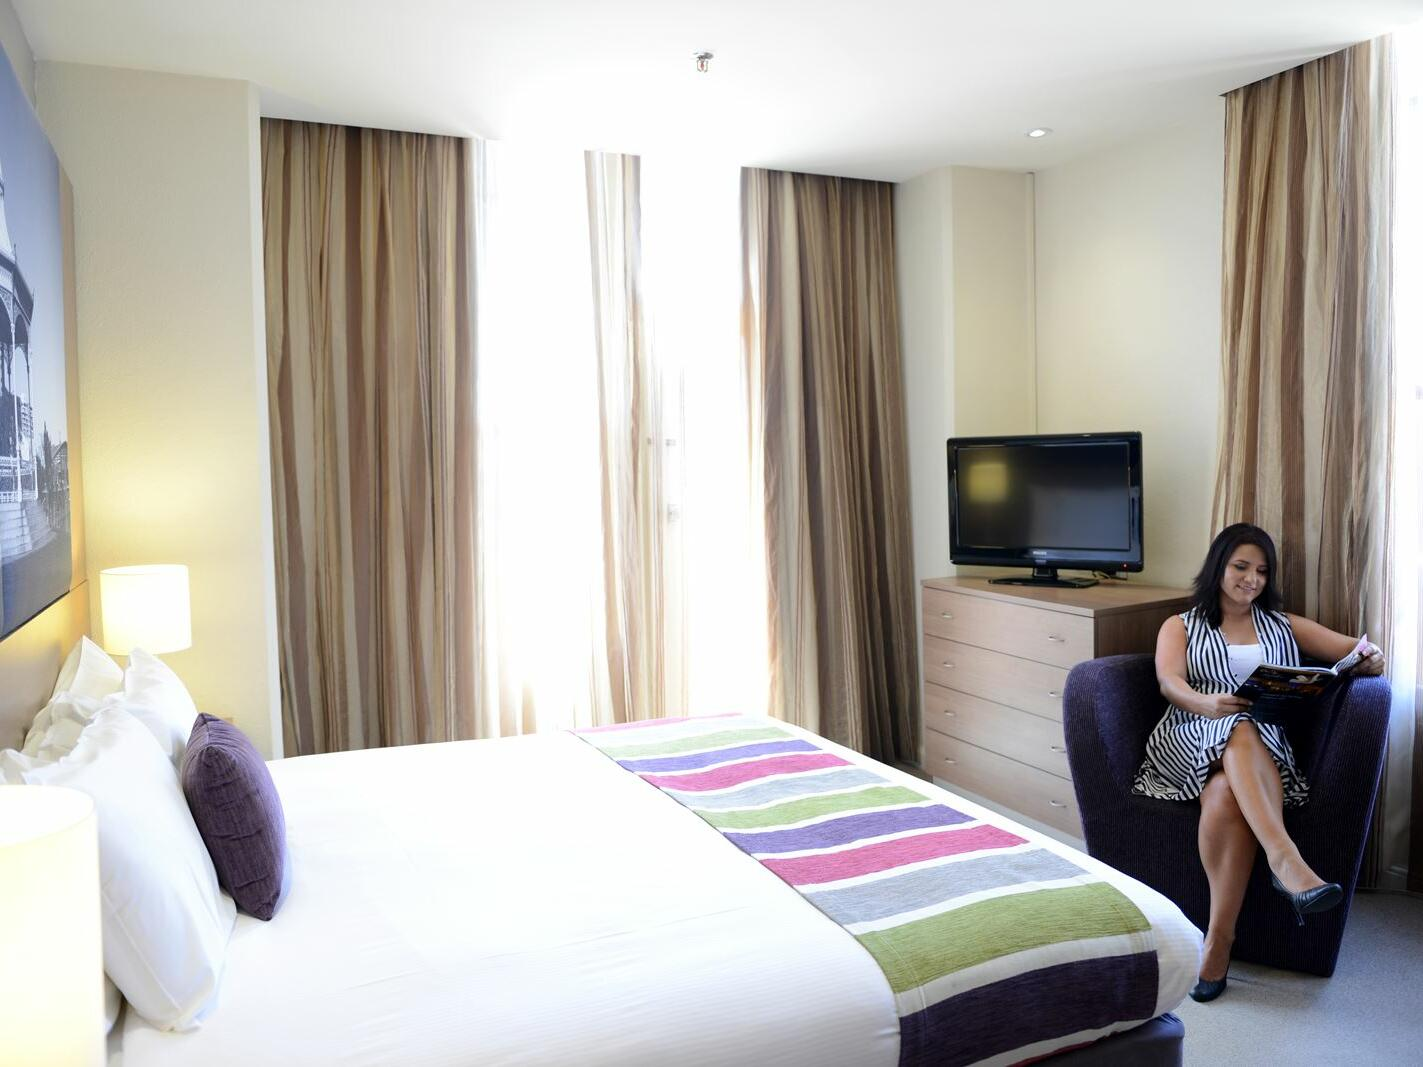 Suites room with a lady reading a book  at Grosvenor Hotel